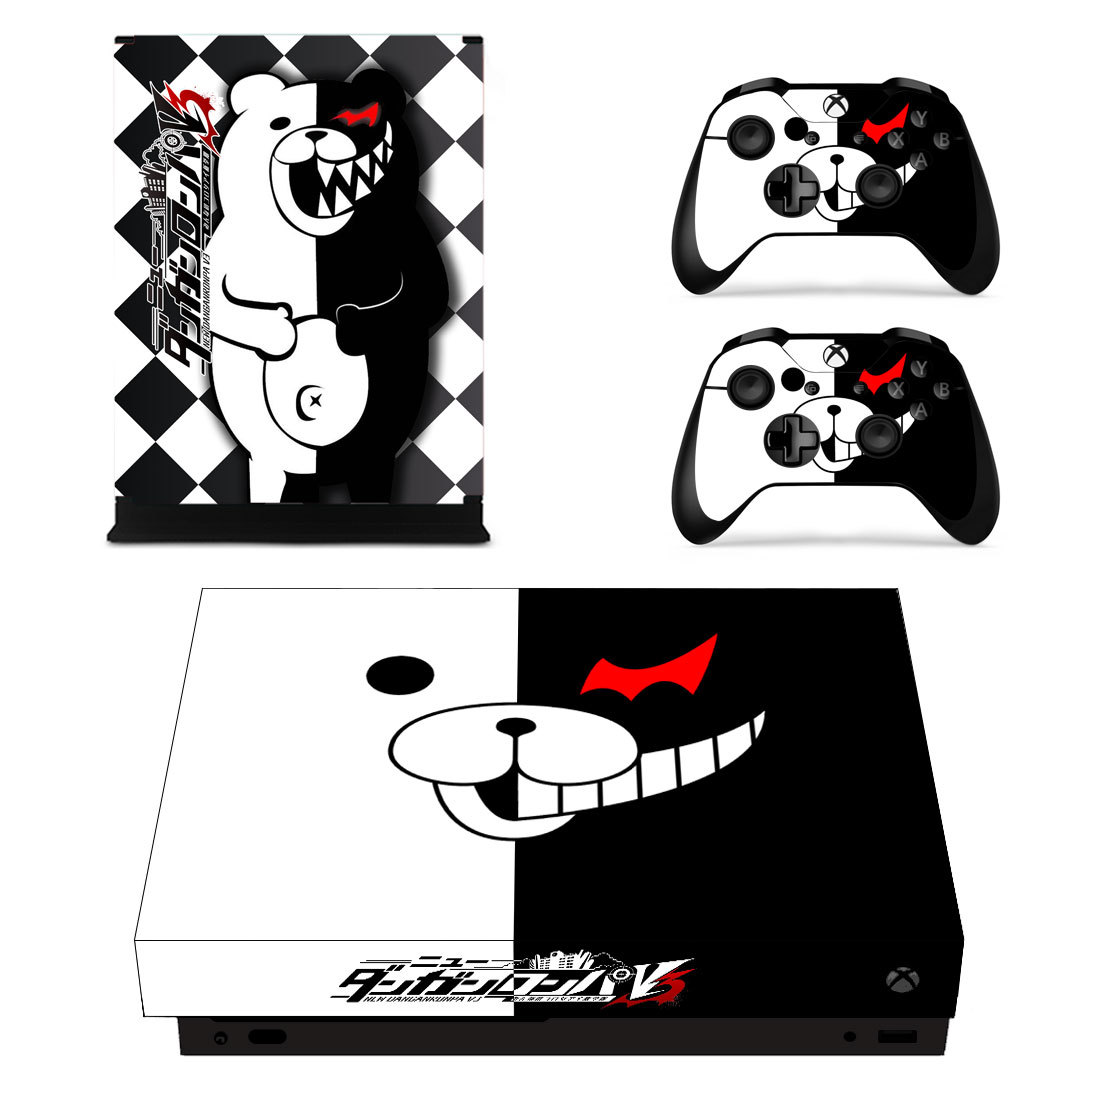 Ps4 Pro Console Skin Decal Nba Boston Celtics Vinyl Stickers Decals Covers Wrap Terrific Value Faceplates, Decals & Stickers